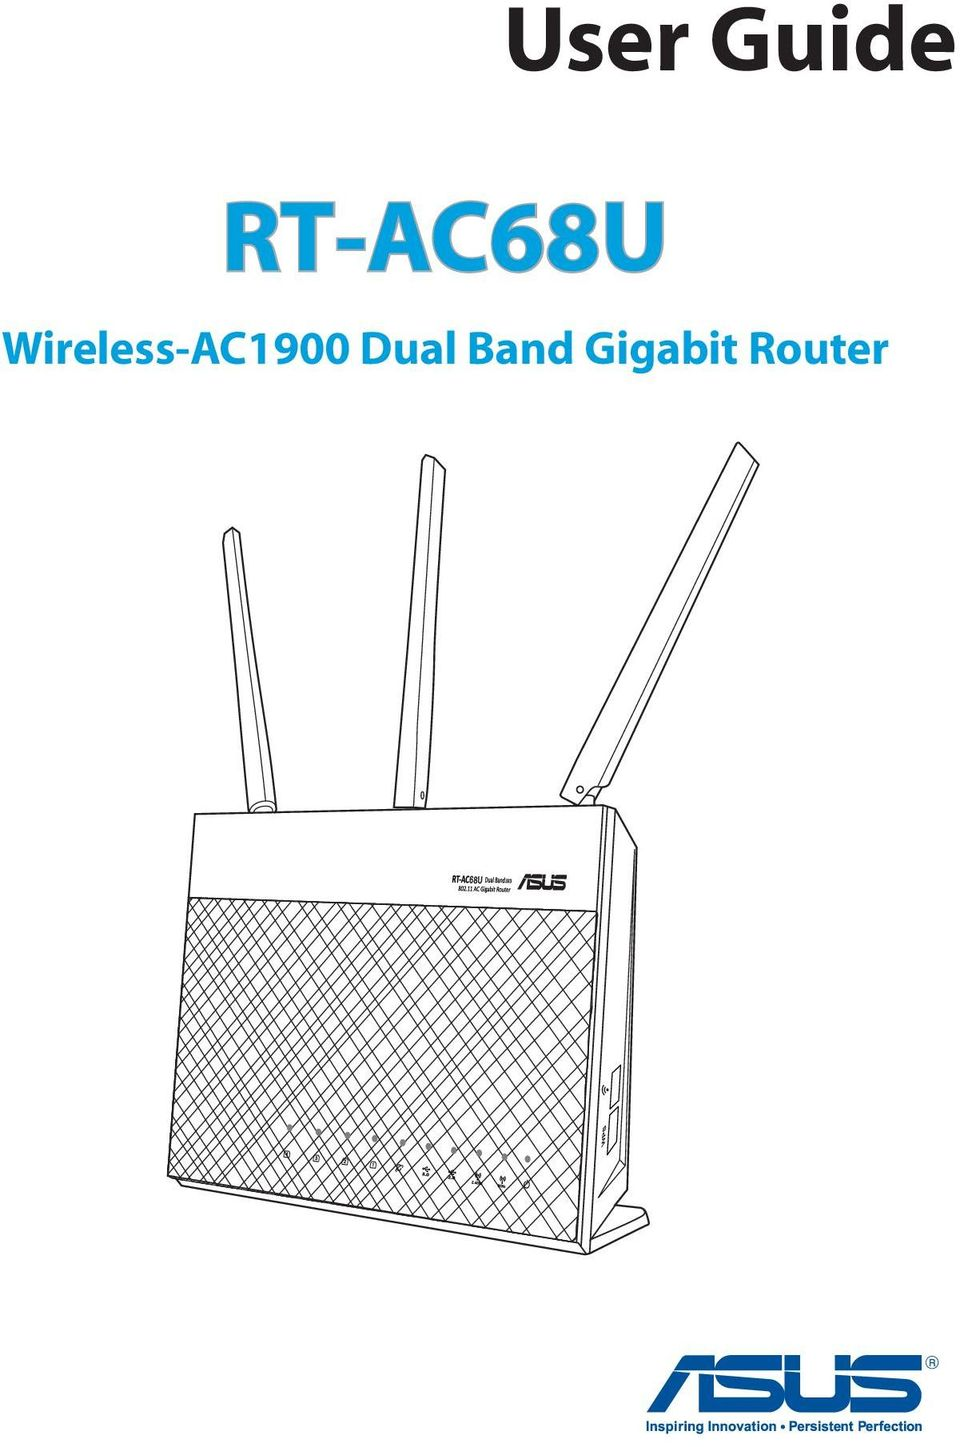 Wireless-AC1900